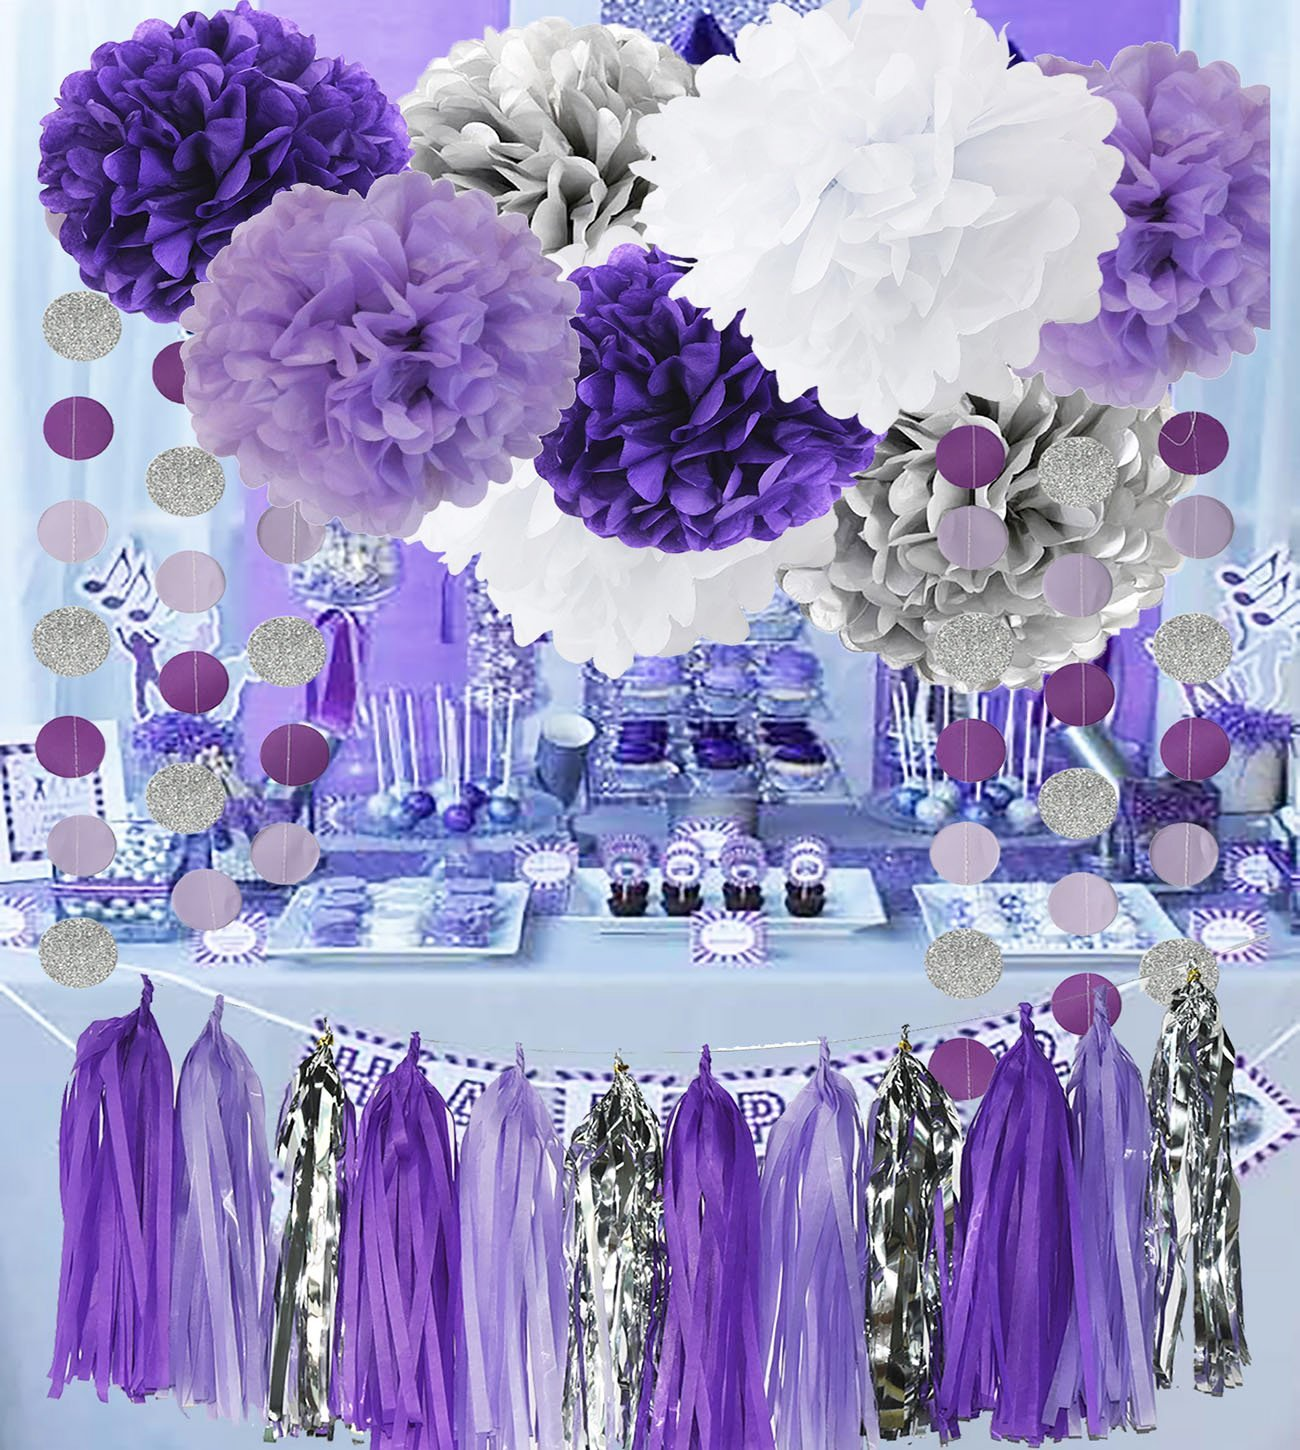 low cost bridal shower decorations purple white silver tissue pom pom amaranth purple silver circle